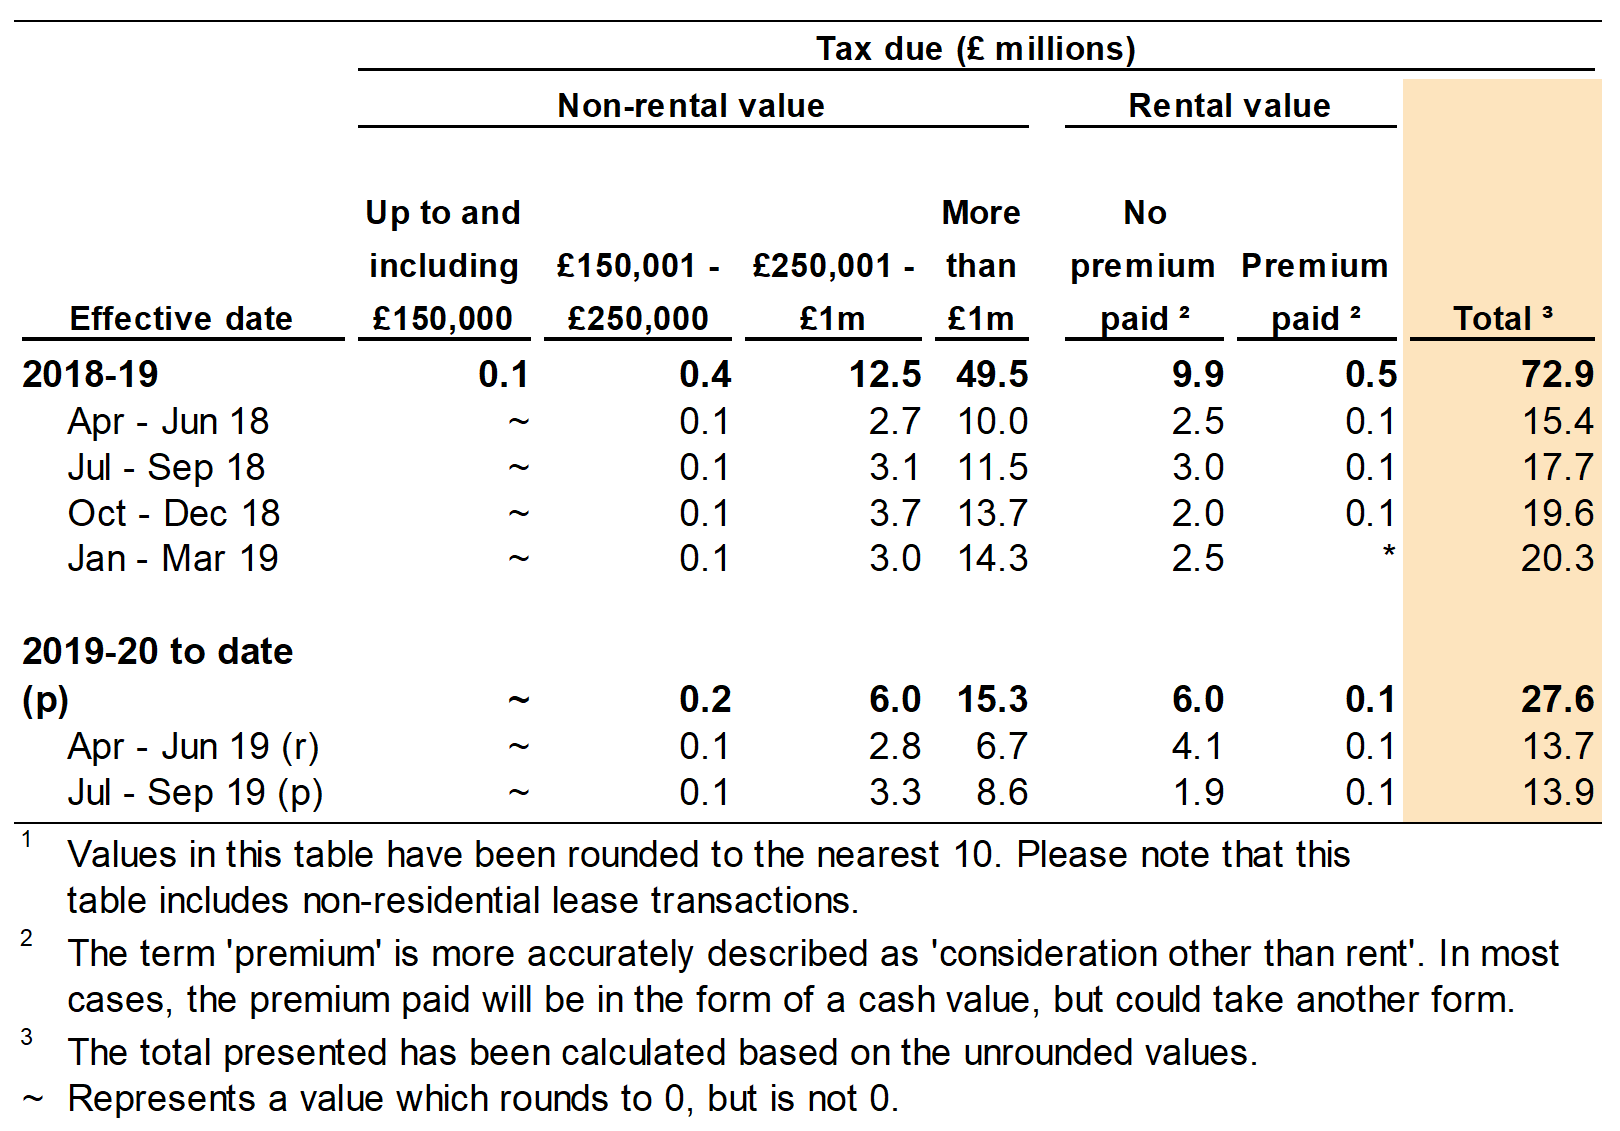 Figure 4.2 shows the amount of tax due on non-residential transactions by value of the property. Data is shown for the year and quarter in which the transaction was effective.